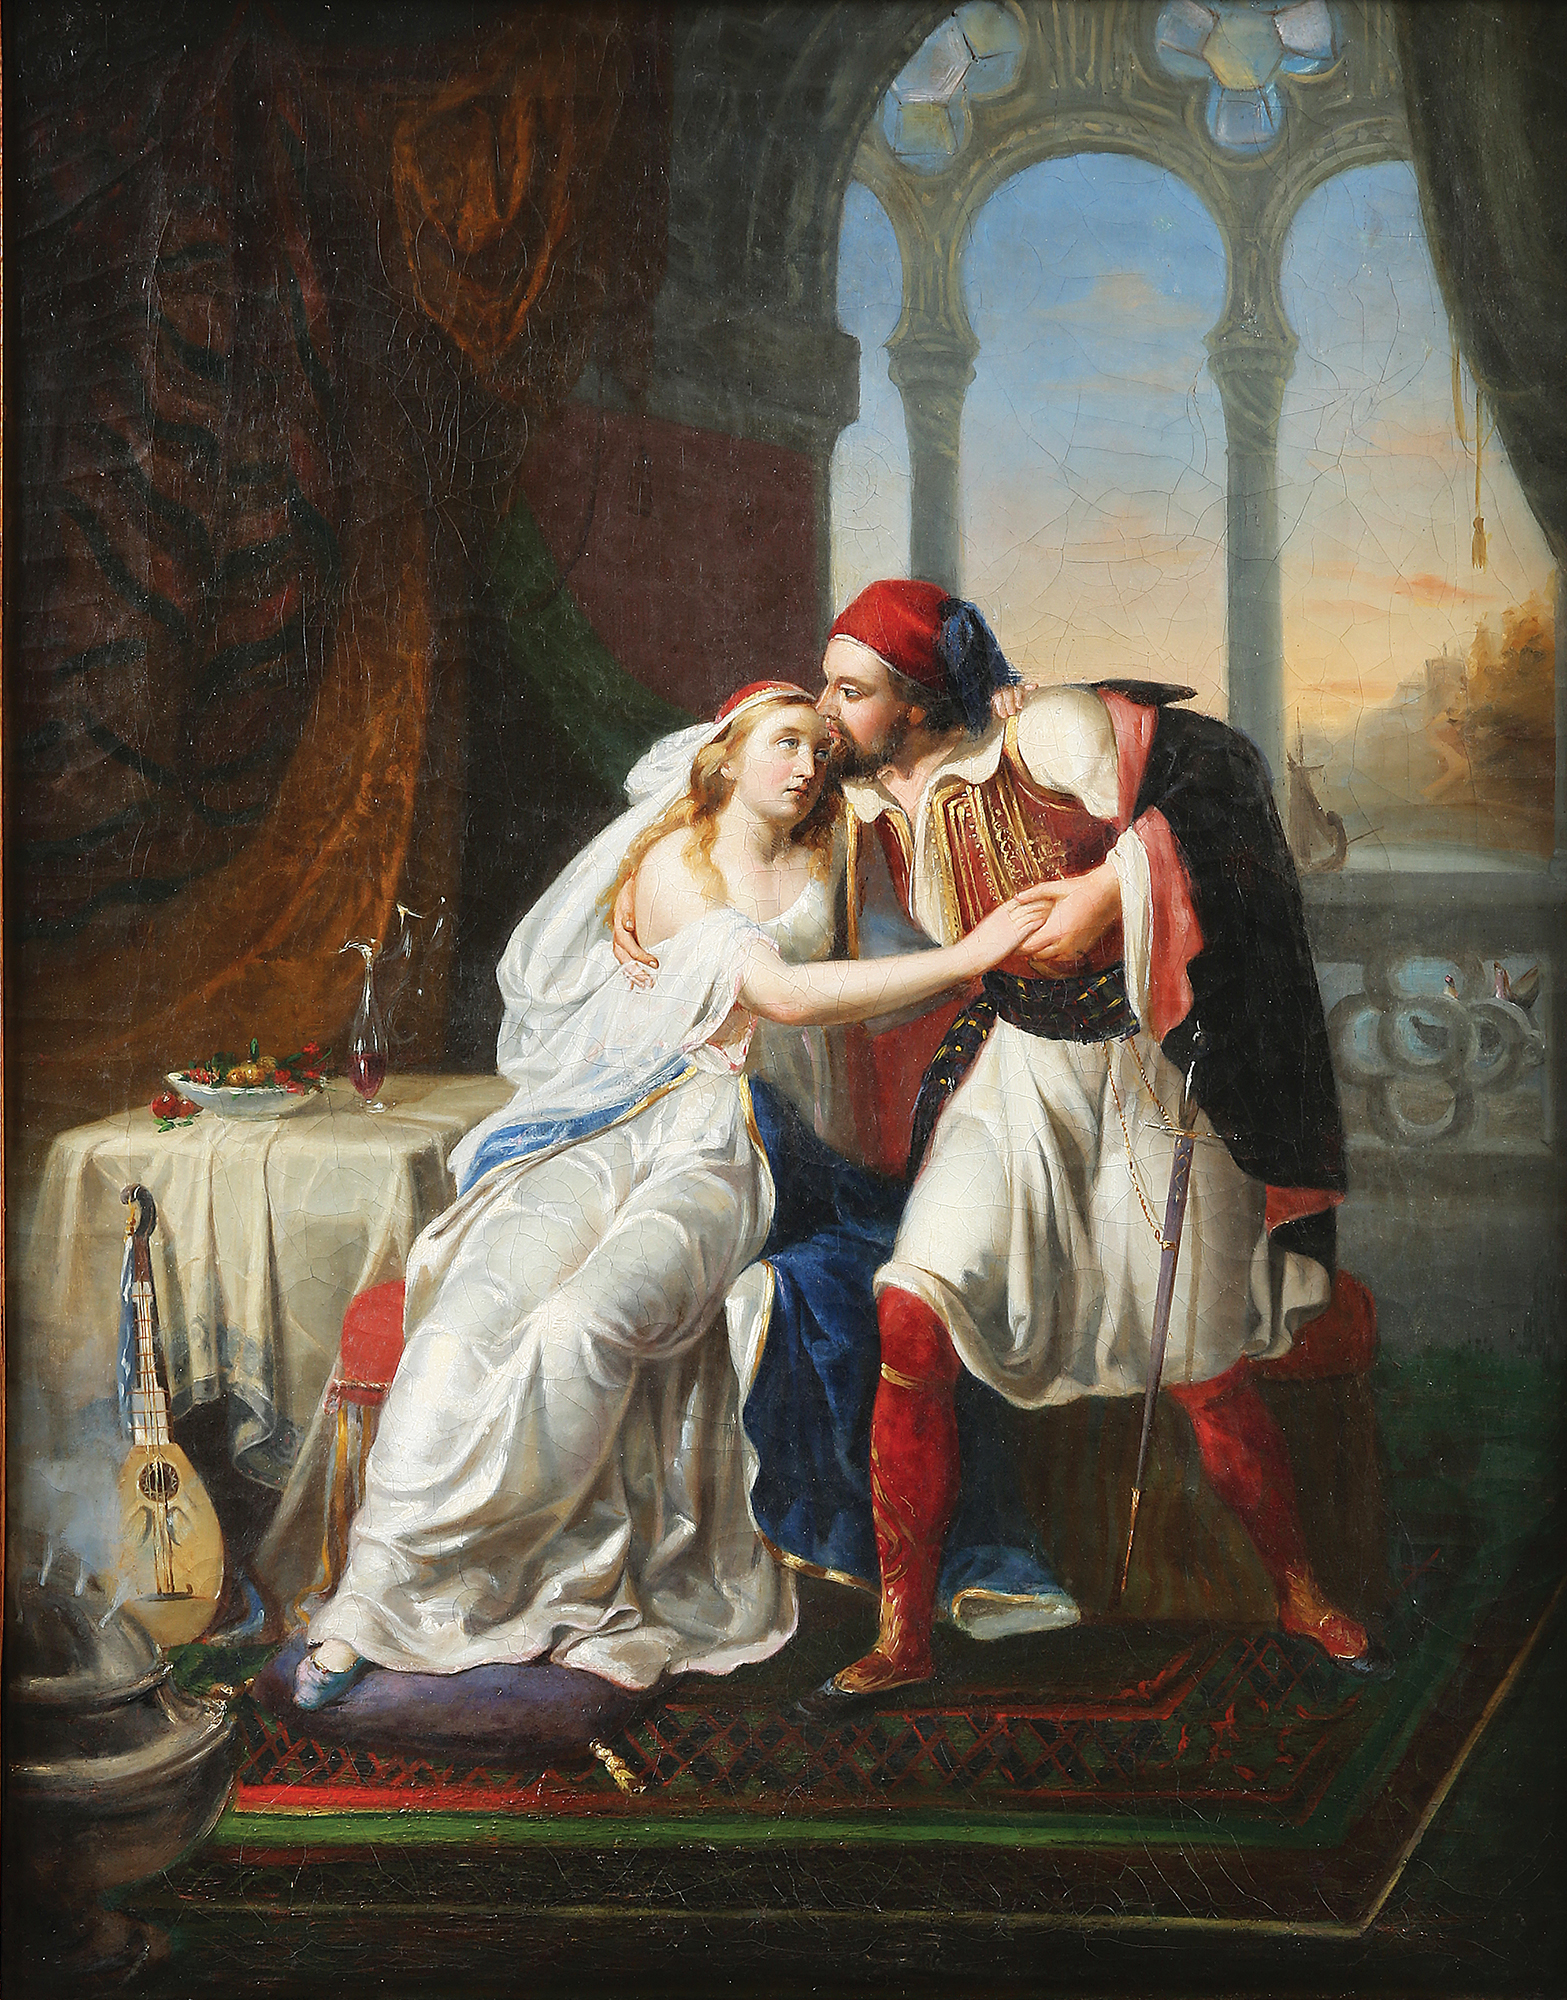 Francesco Hayez (school of) - Farewell of a Greek warrior and his beloved